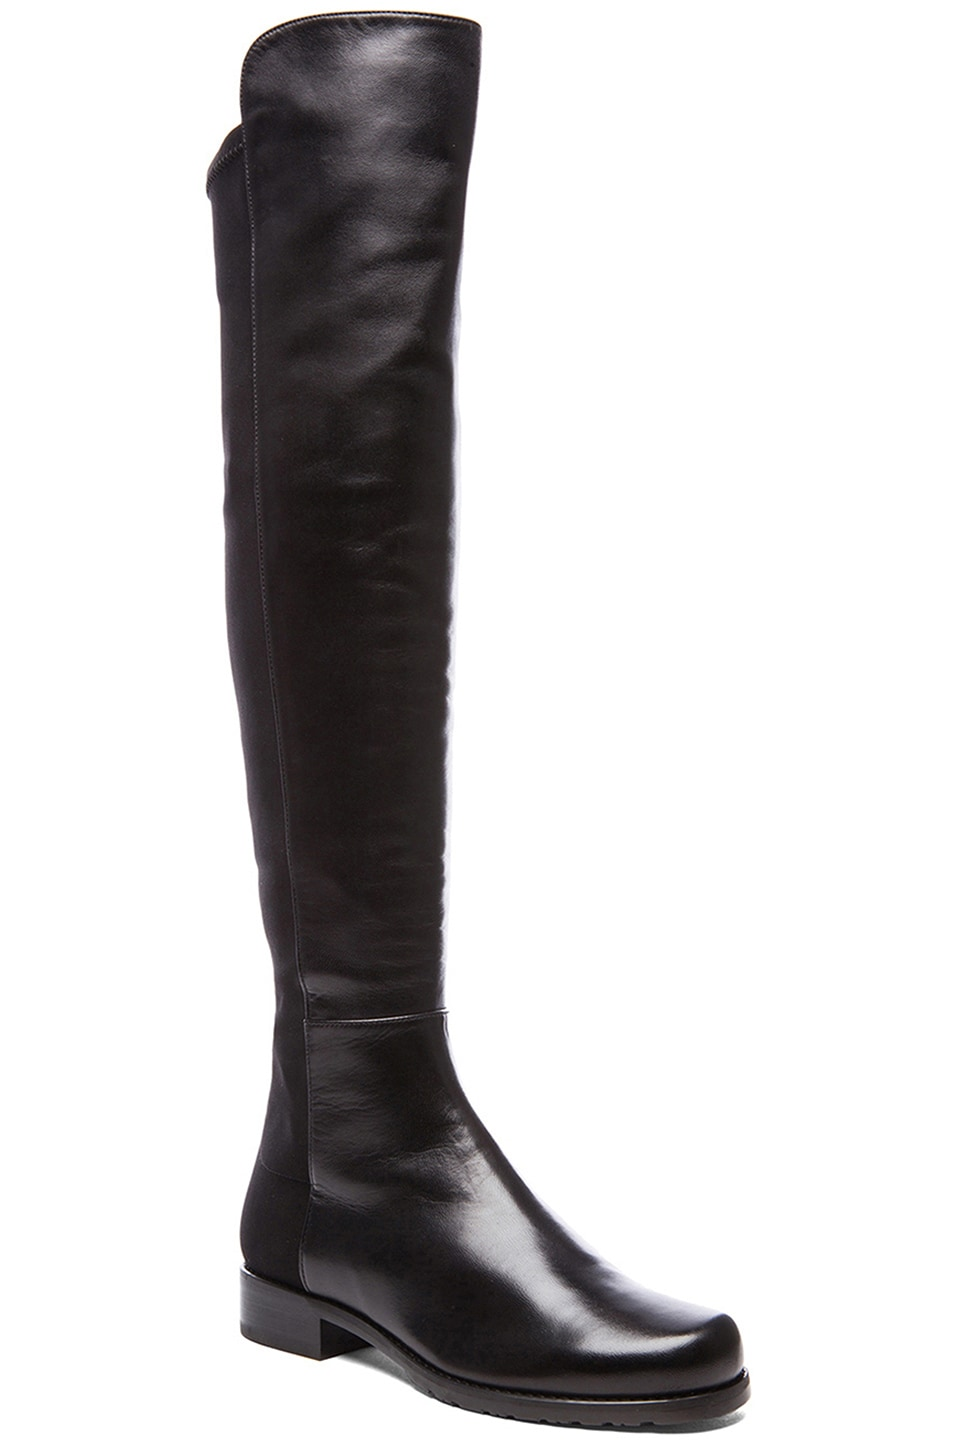 Image 2 of Stuart Weitzman 50/50 Leather & Neoprene Boots in Black